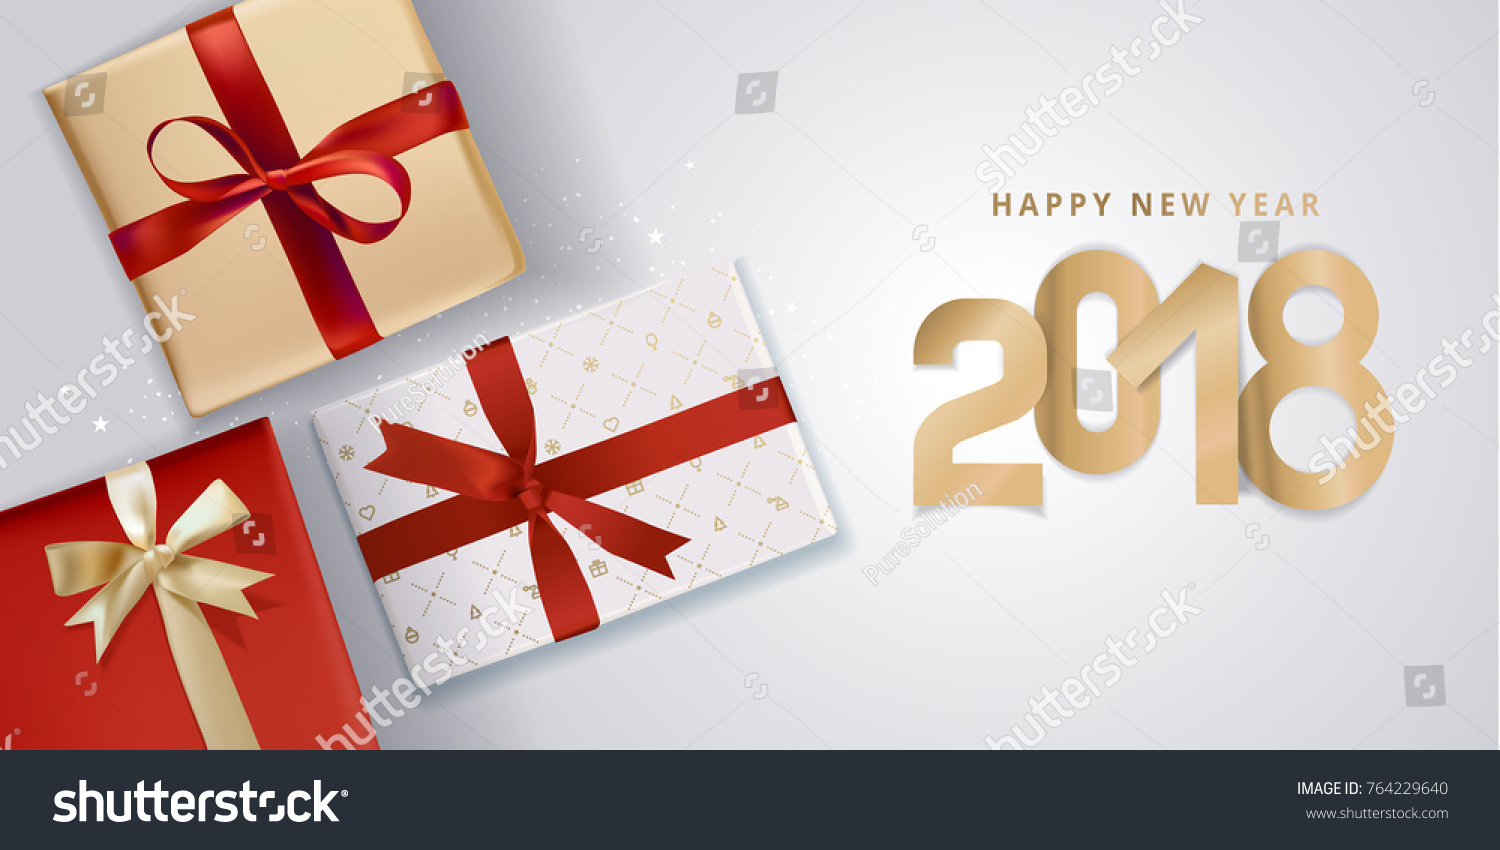 New year greeting card vector illustration stock vector royalty new year greeting card vector illustration concept for greeting cards website and mobile banners m4hsunfo